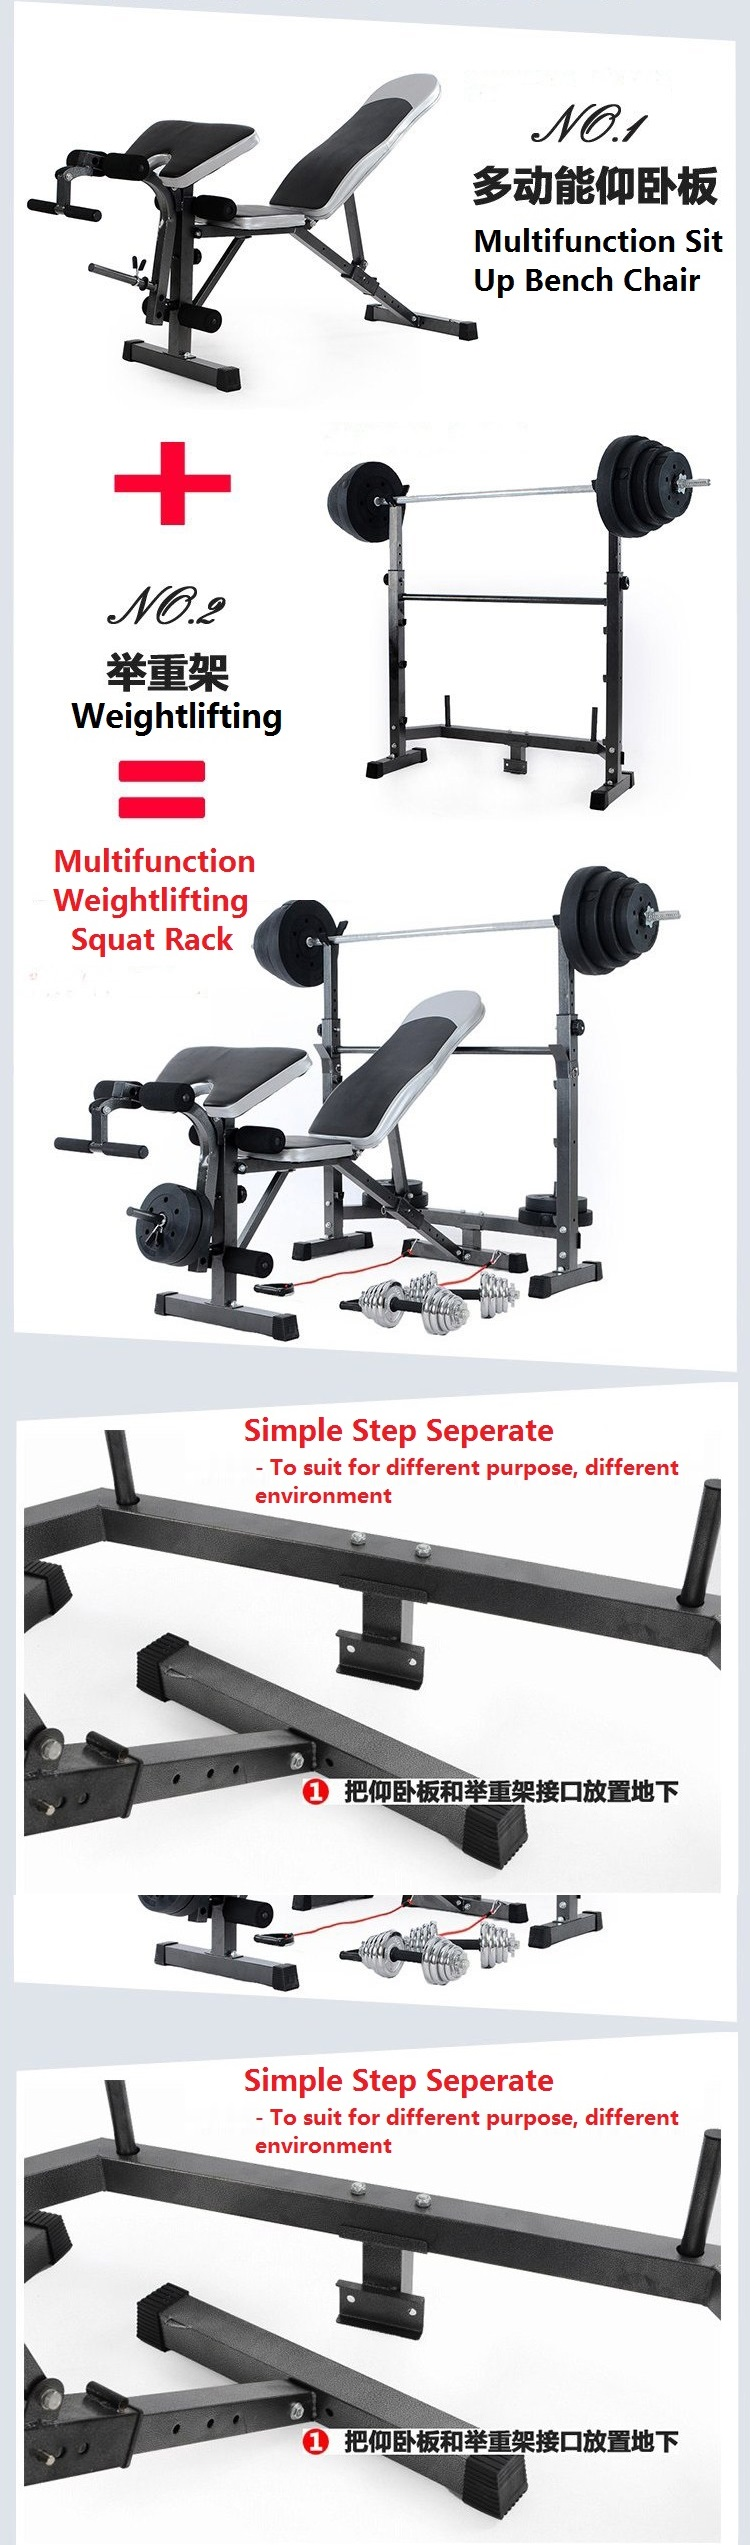 F1 Professional Multifunction Gym Fitness Sit Up Dumbbell FID Bicep Leg Curl Bench Chair